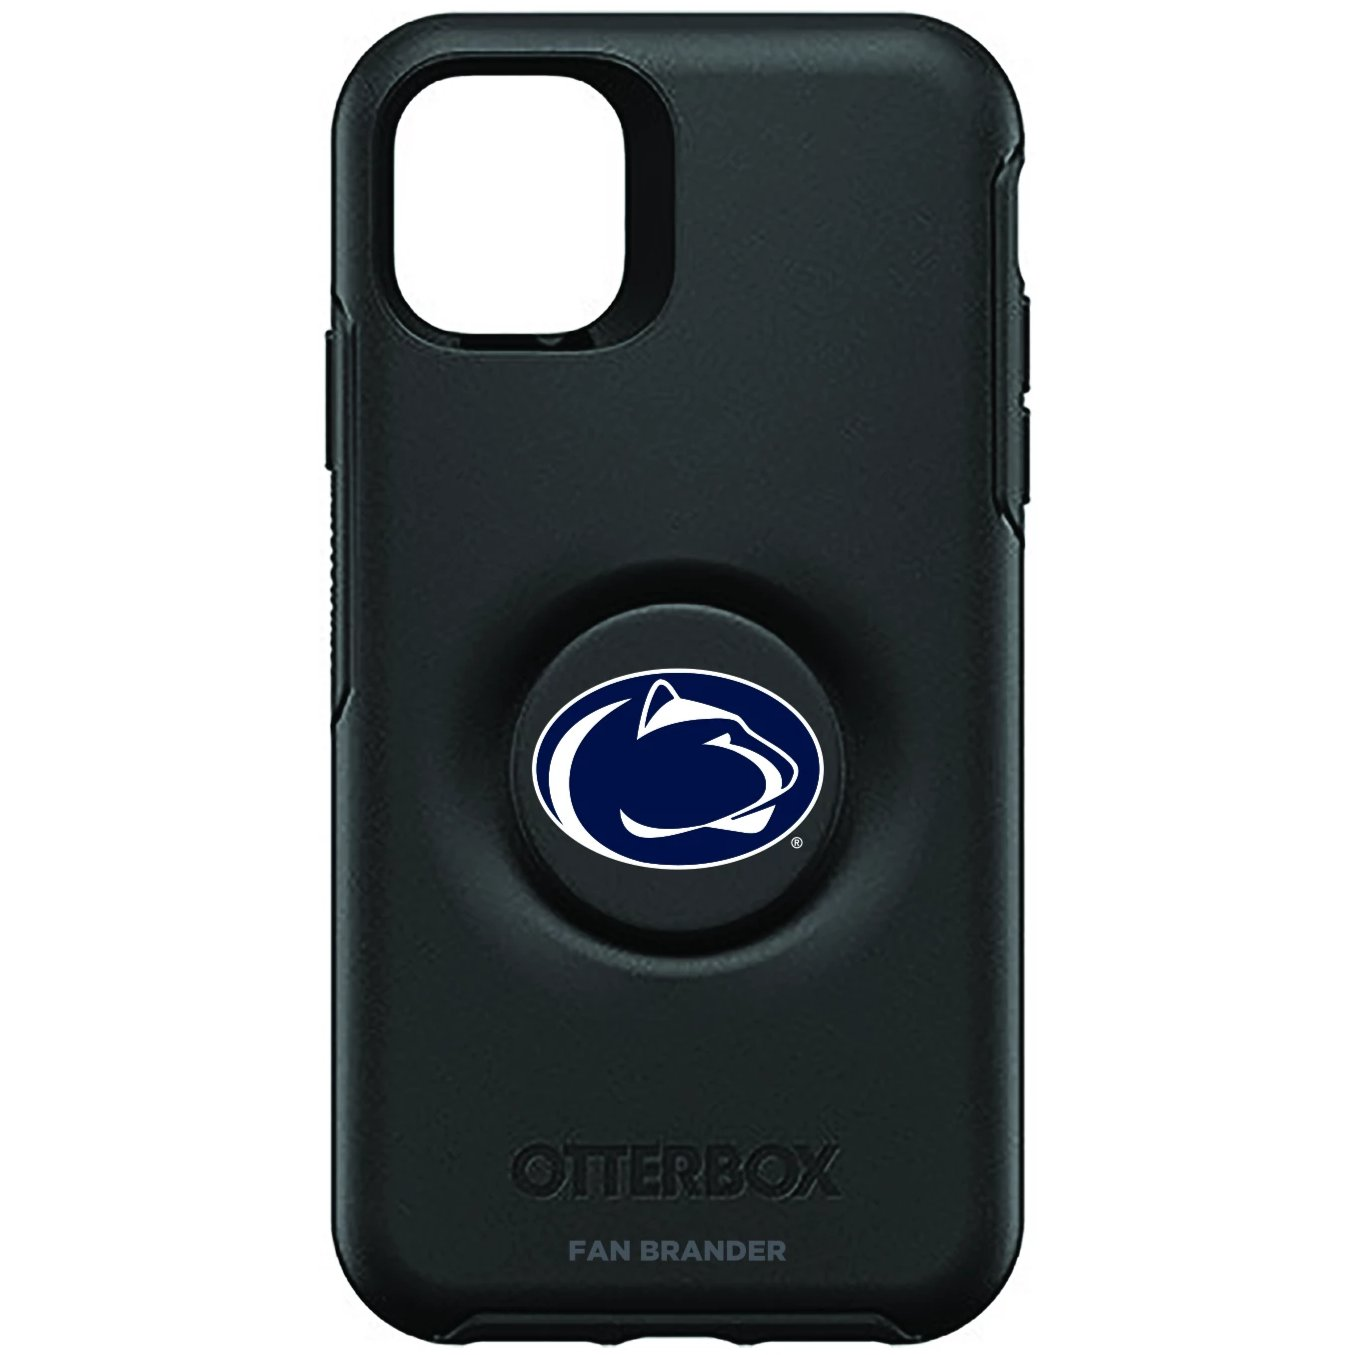 Penn State Nittany Lions Otter + Pop Symmetry Case (for iPhone 11, Pro, Pro Max)